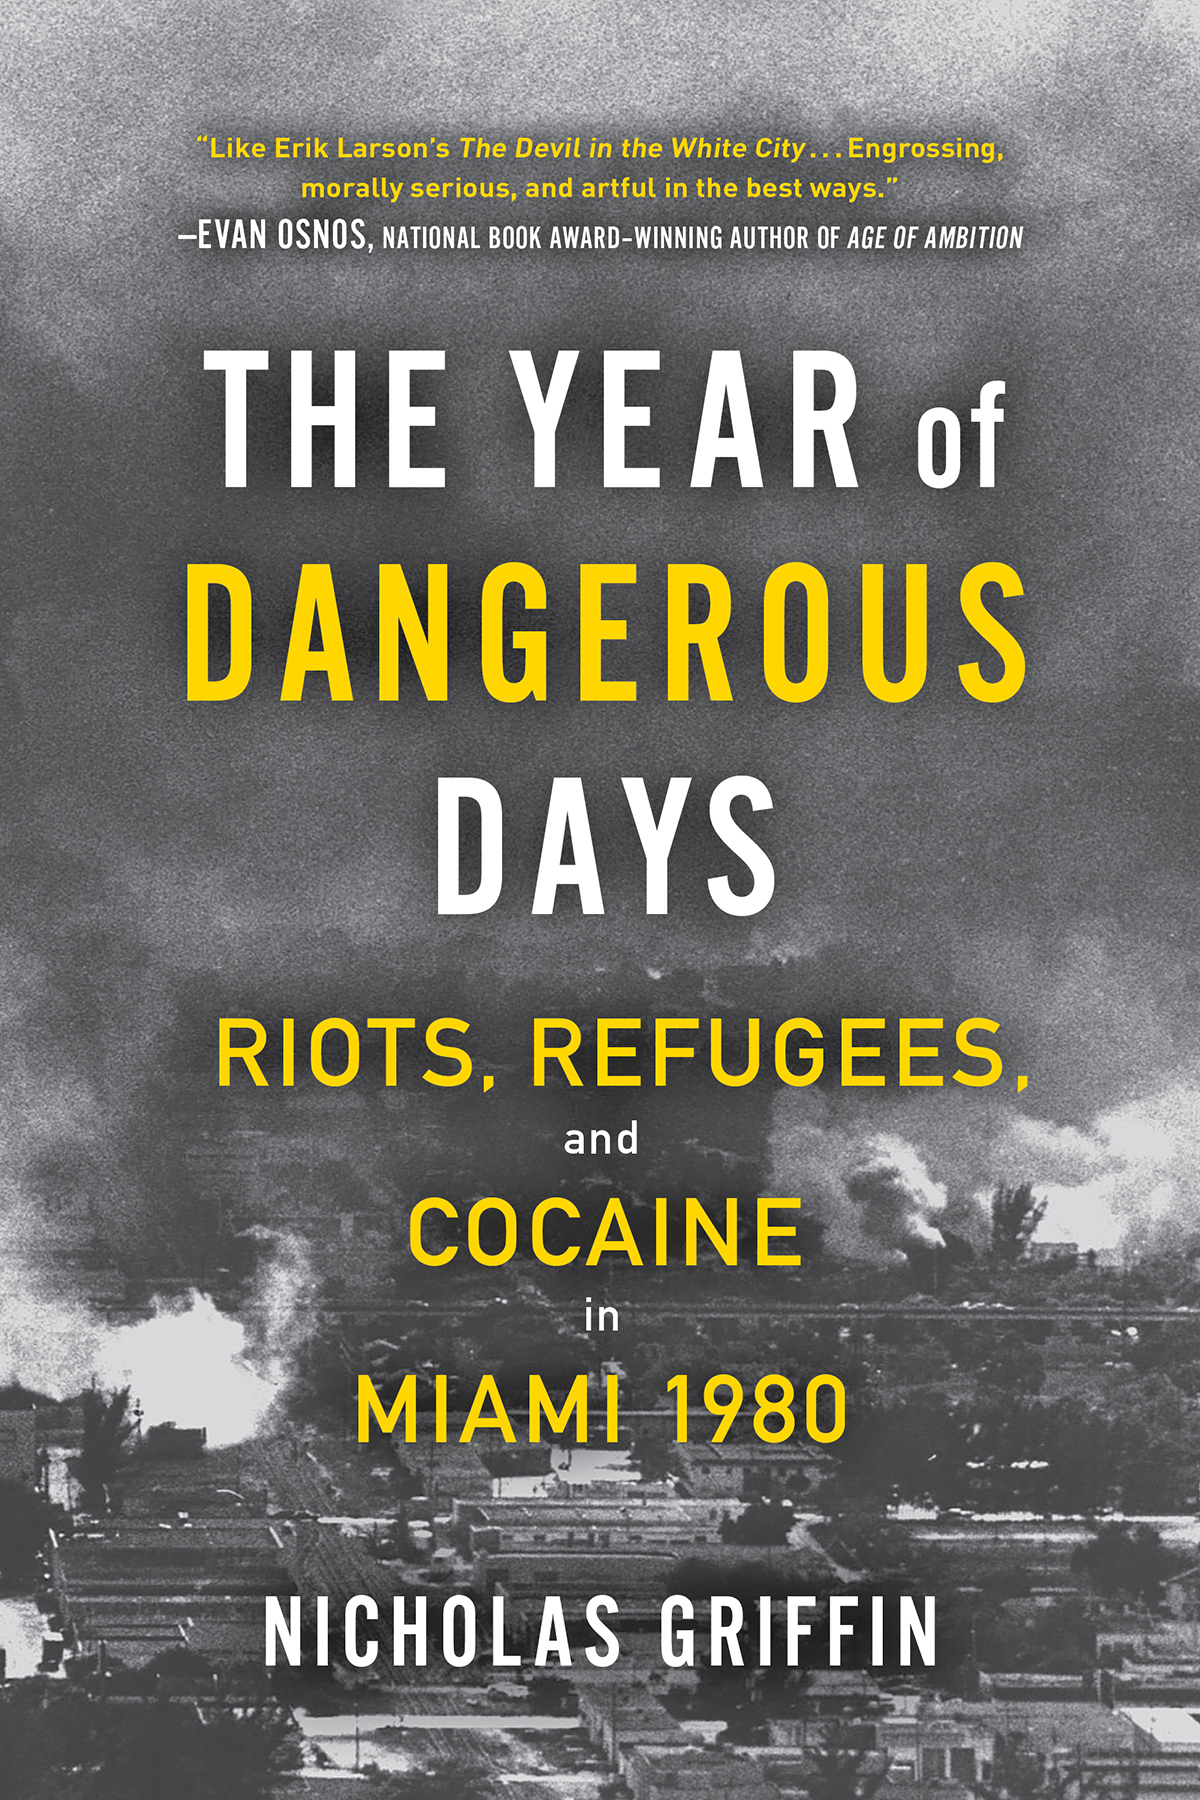 """""""The Year of Dangerous Days: Riots, Refugees and Cocaine in Miami 1980"""" by Nicholas Griffin"""